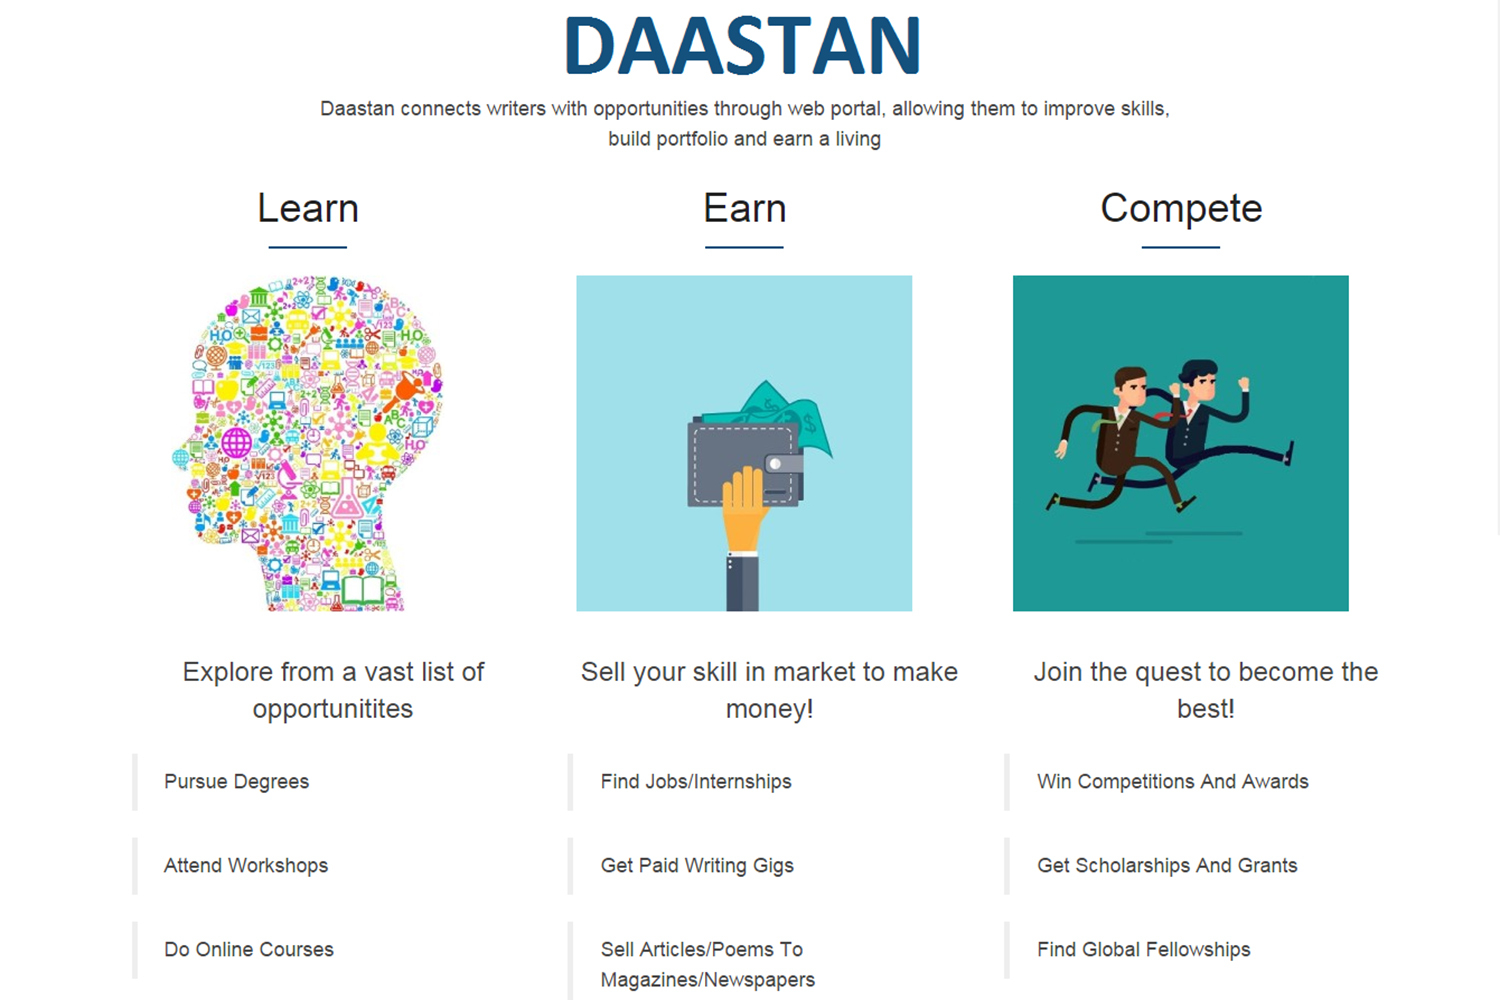 daastan reviving s literary sector one click at a time daastan takes a wholistic approach to starting a writing career